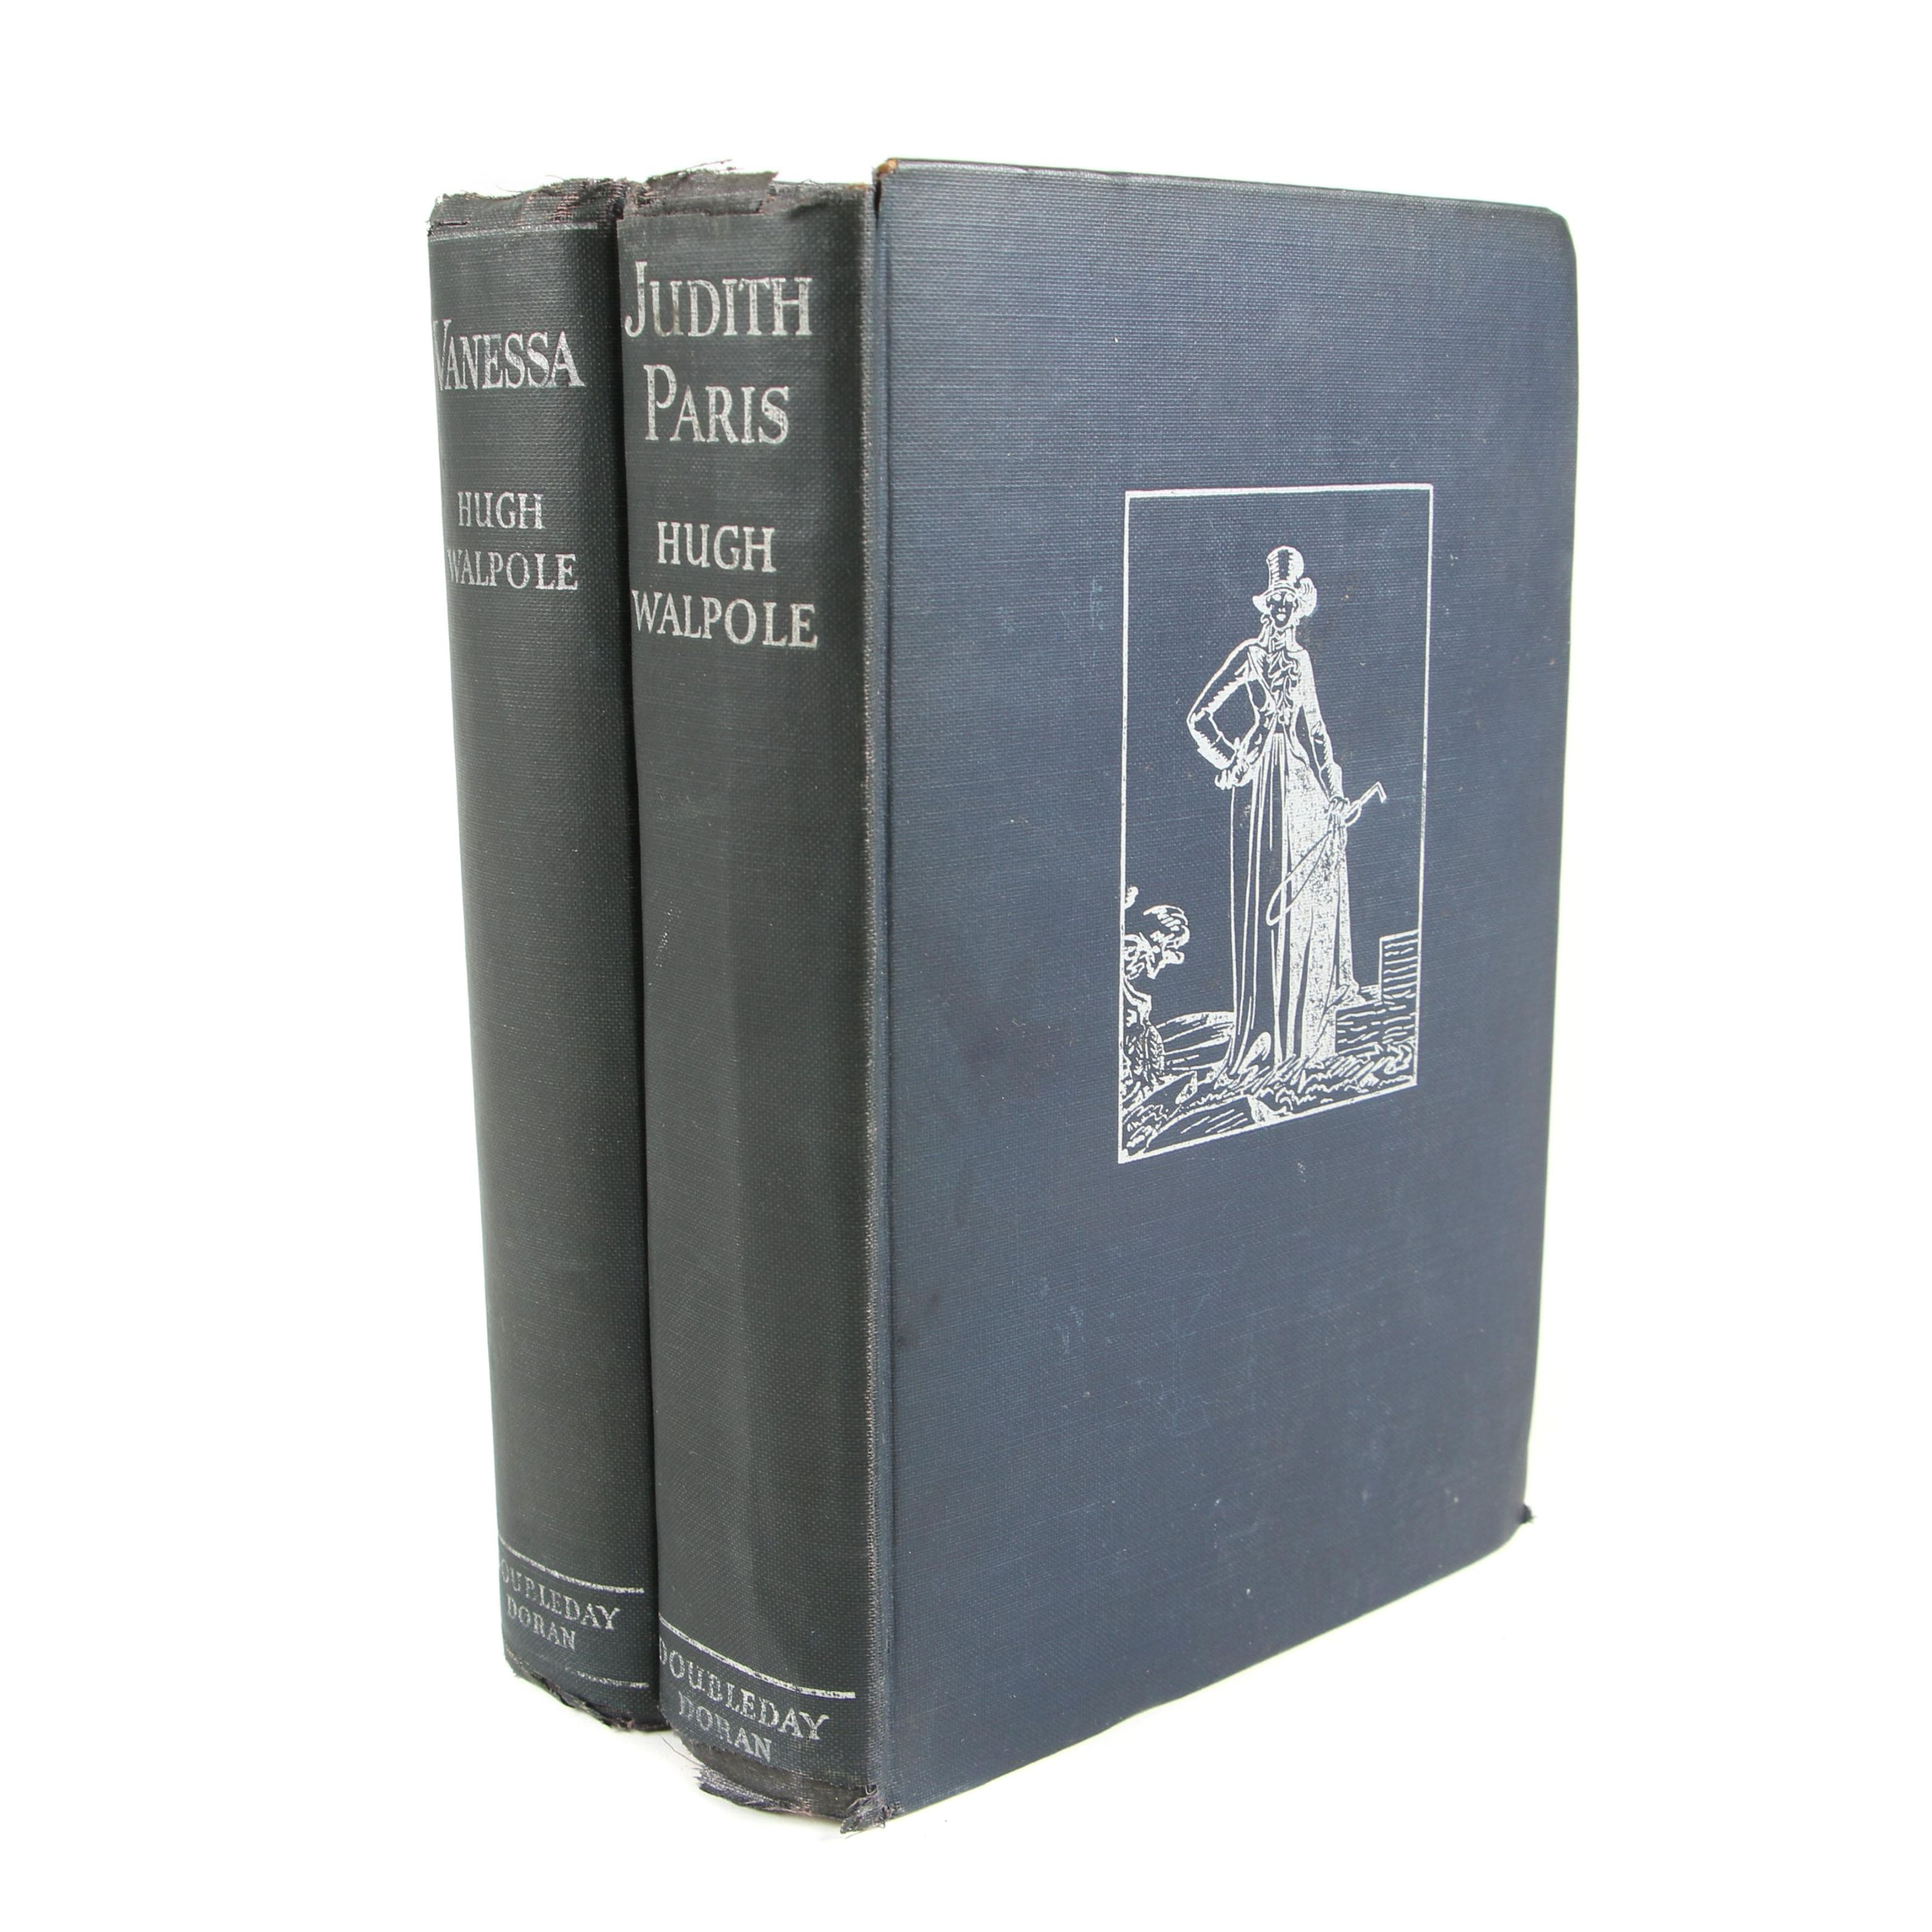 """First Edition """"Judith Paris"""" and """"Vanessa"""" by Hugh Walpole, 1931 and 1933"""